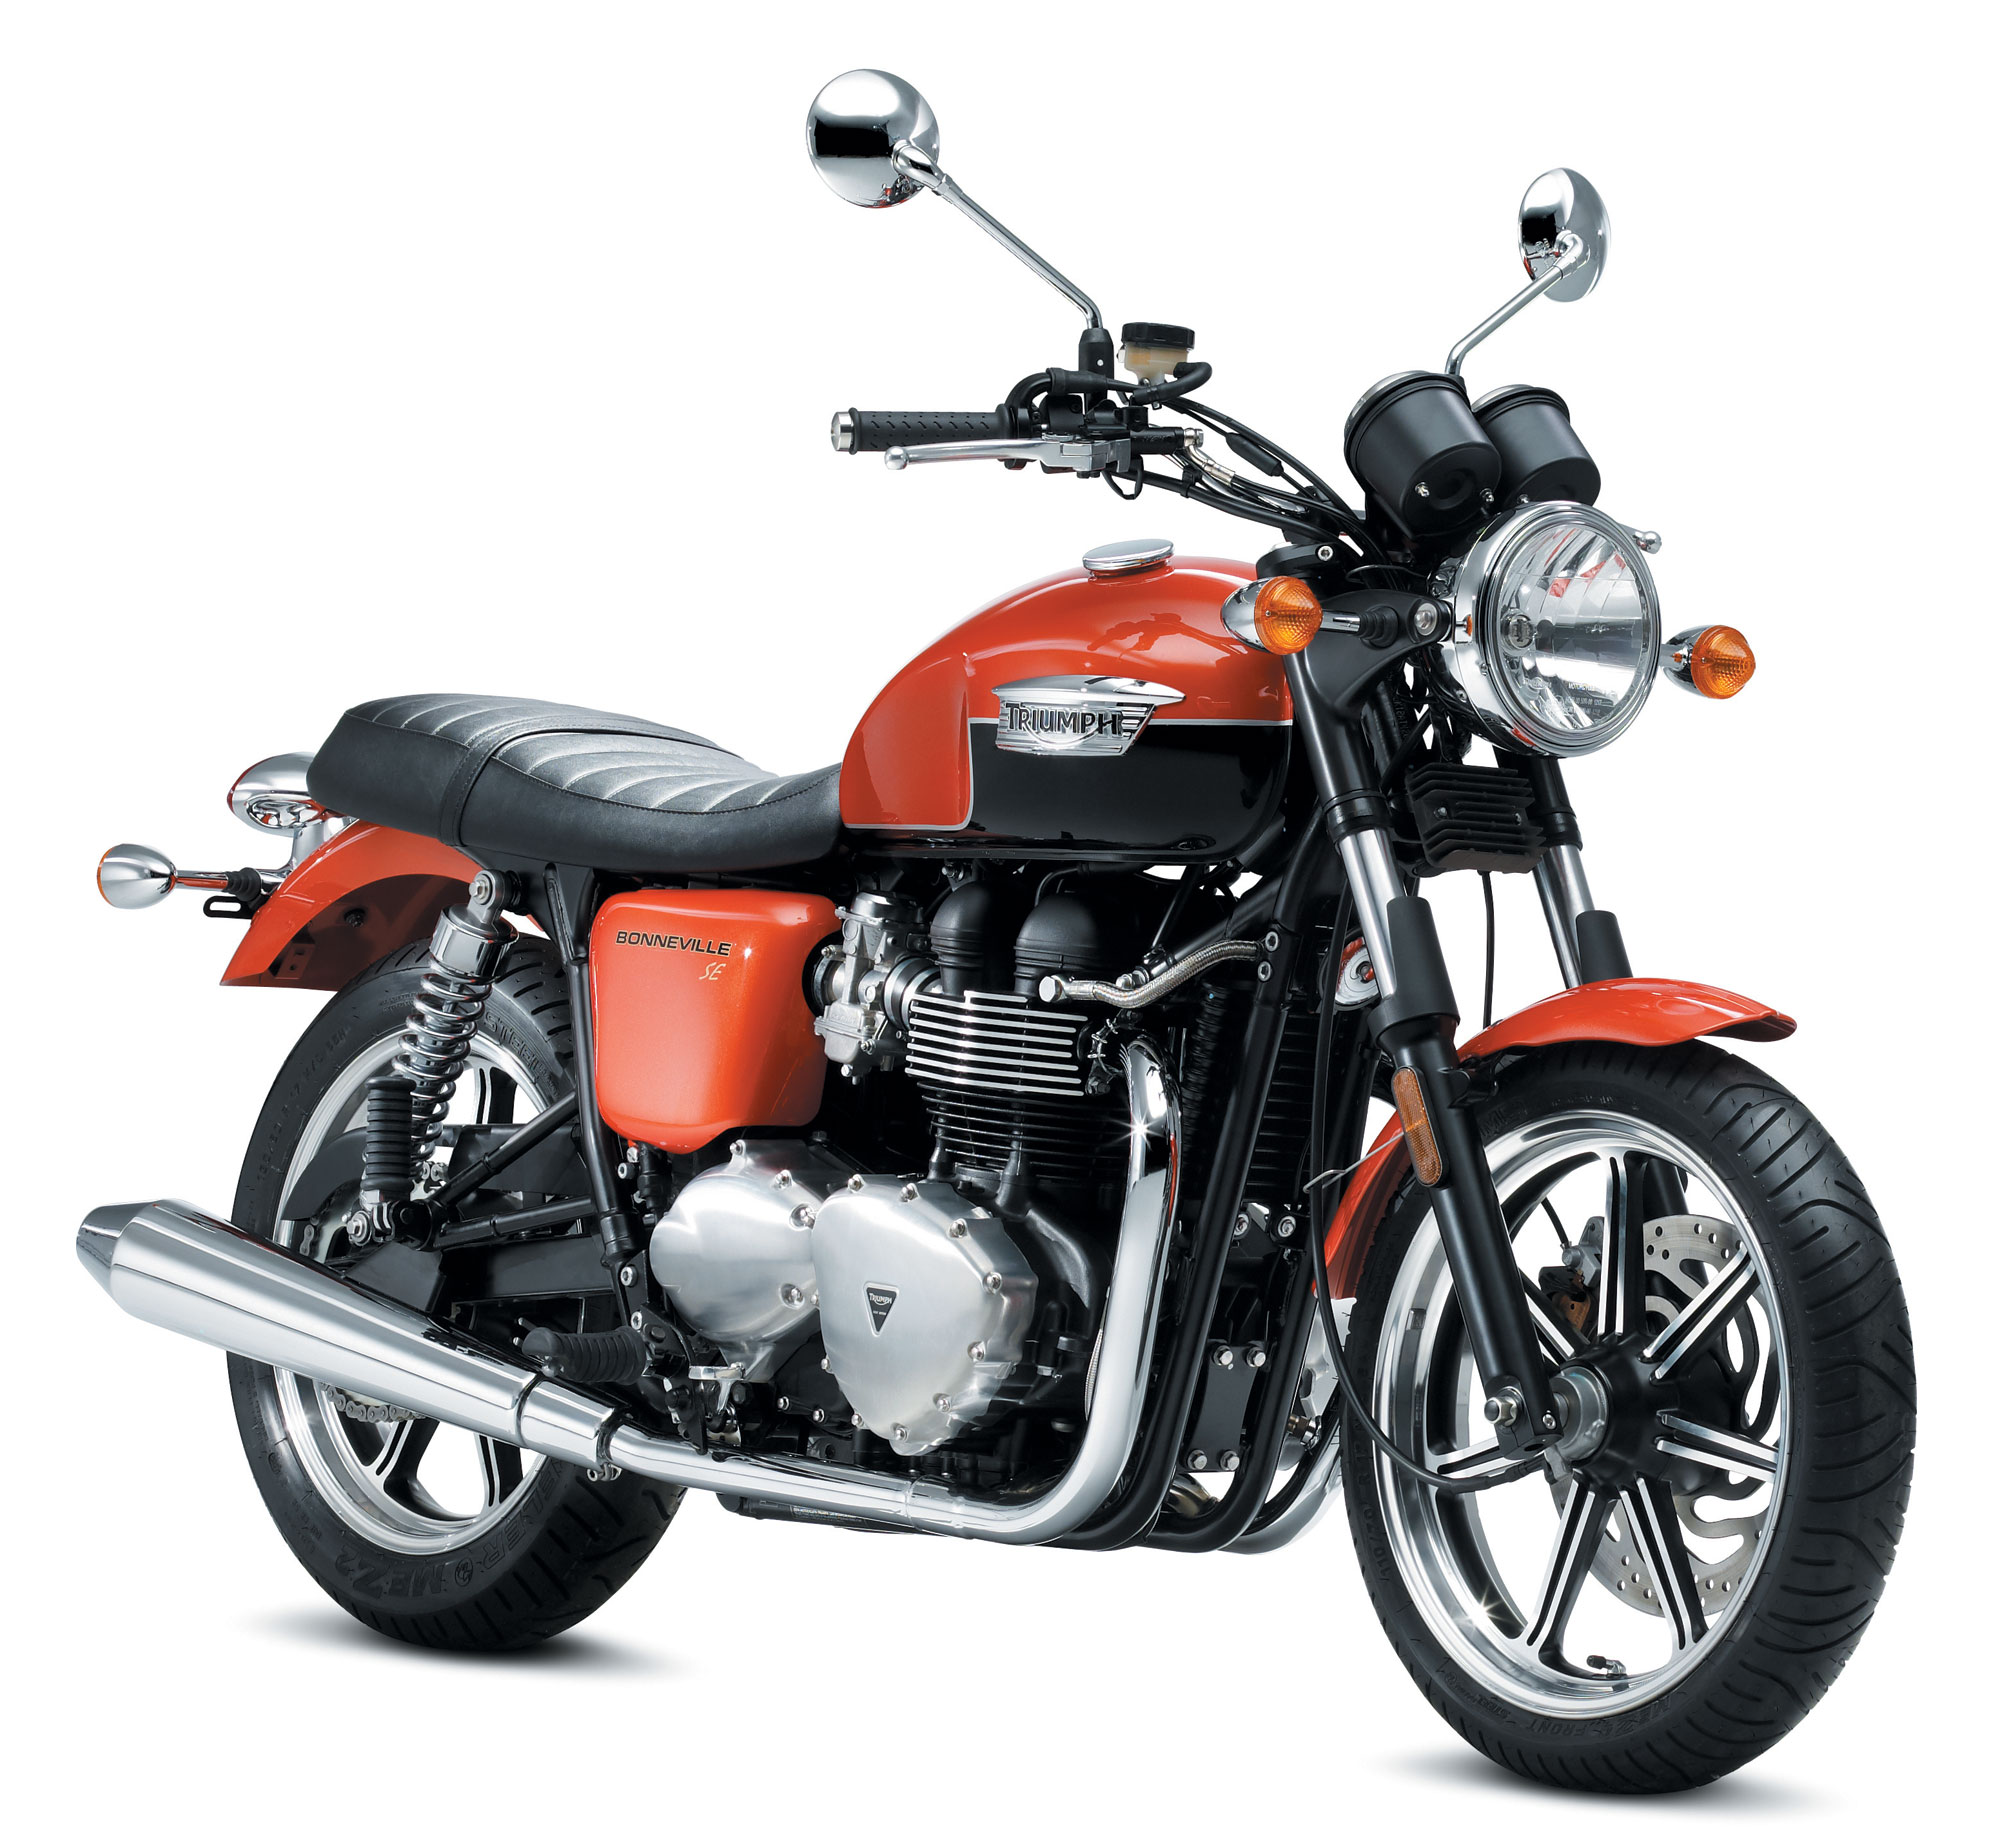 2012 Triumph Bonneville SE Review